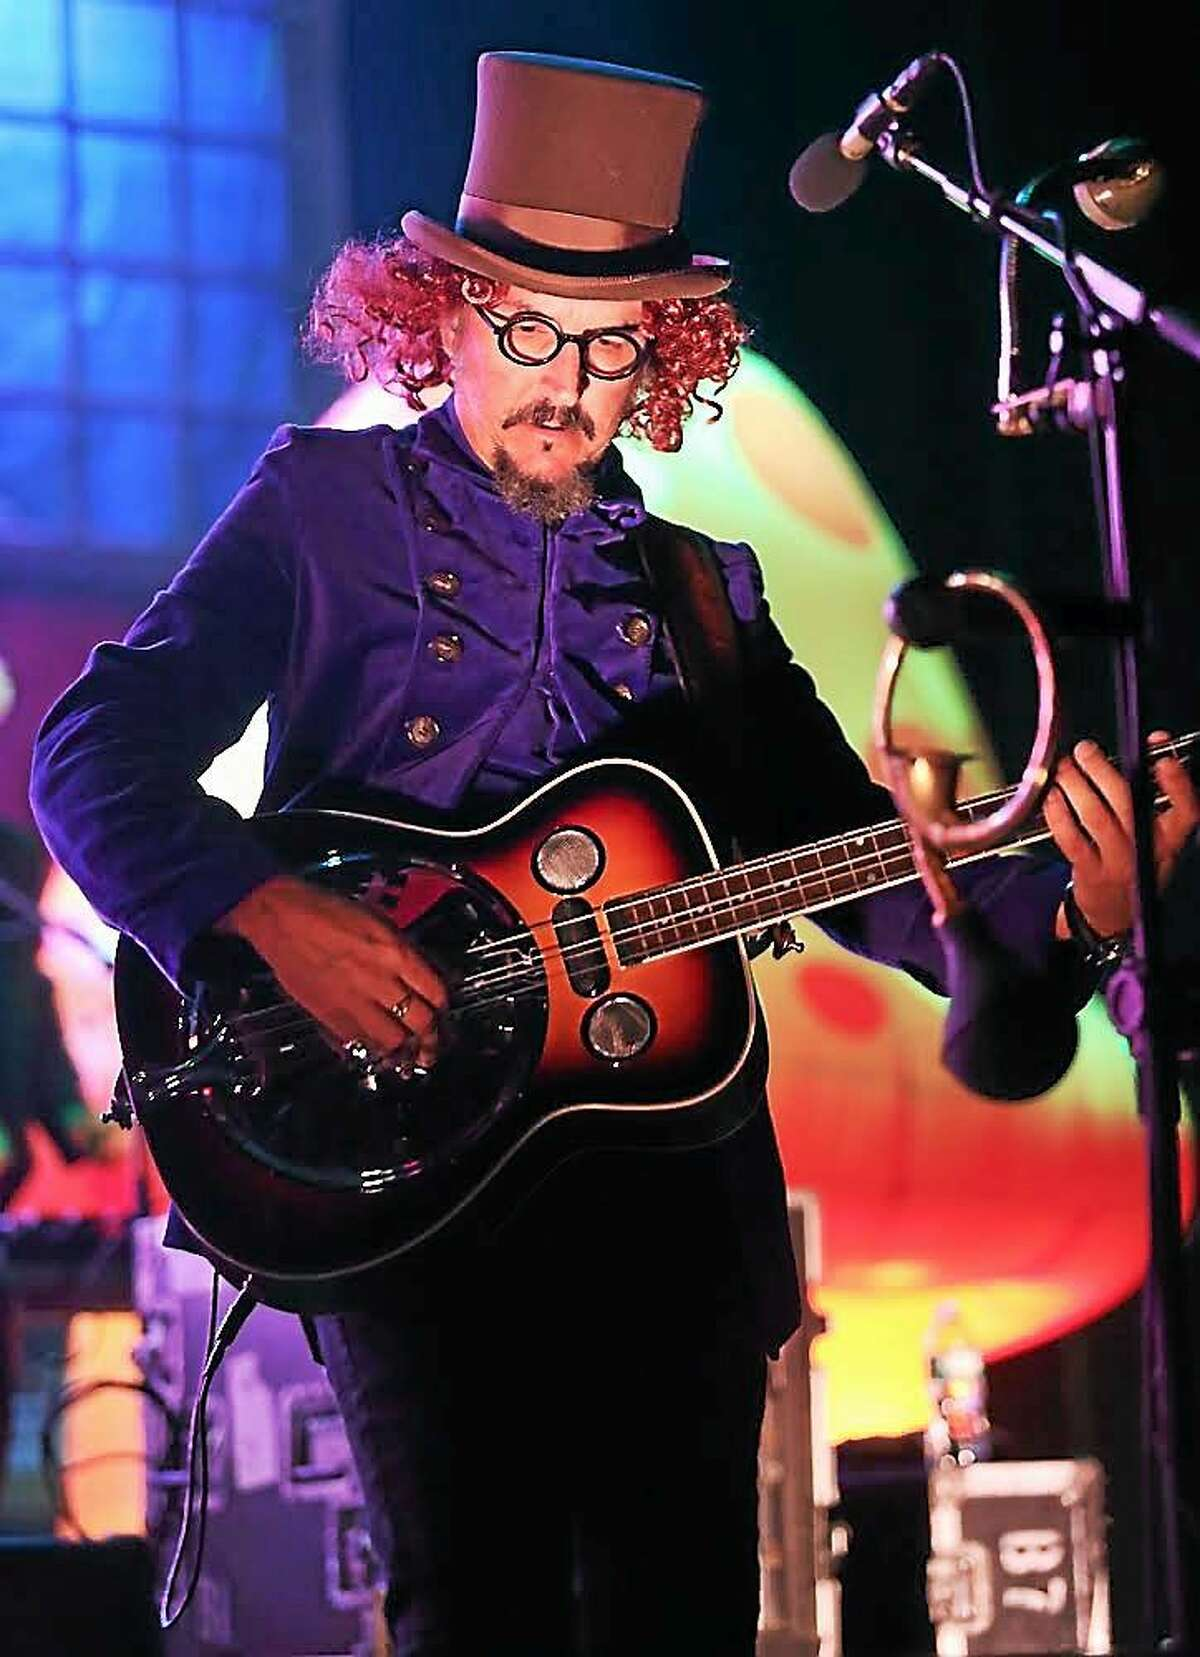 Photo by John Atashian Singer and bassist, Les Claypool of the rock band Primus, is shown performing at the Palace in Waterbury during the group's concert on Oct. 28. Primus is currently on a U.S. tour in support of their brand new cd ìPrimus & the Chocolate Factory.î